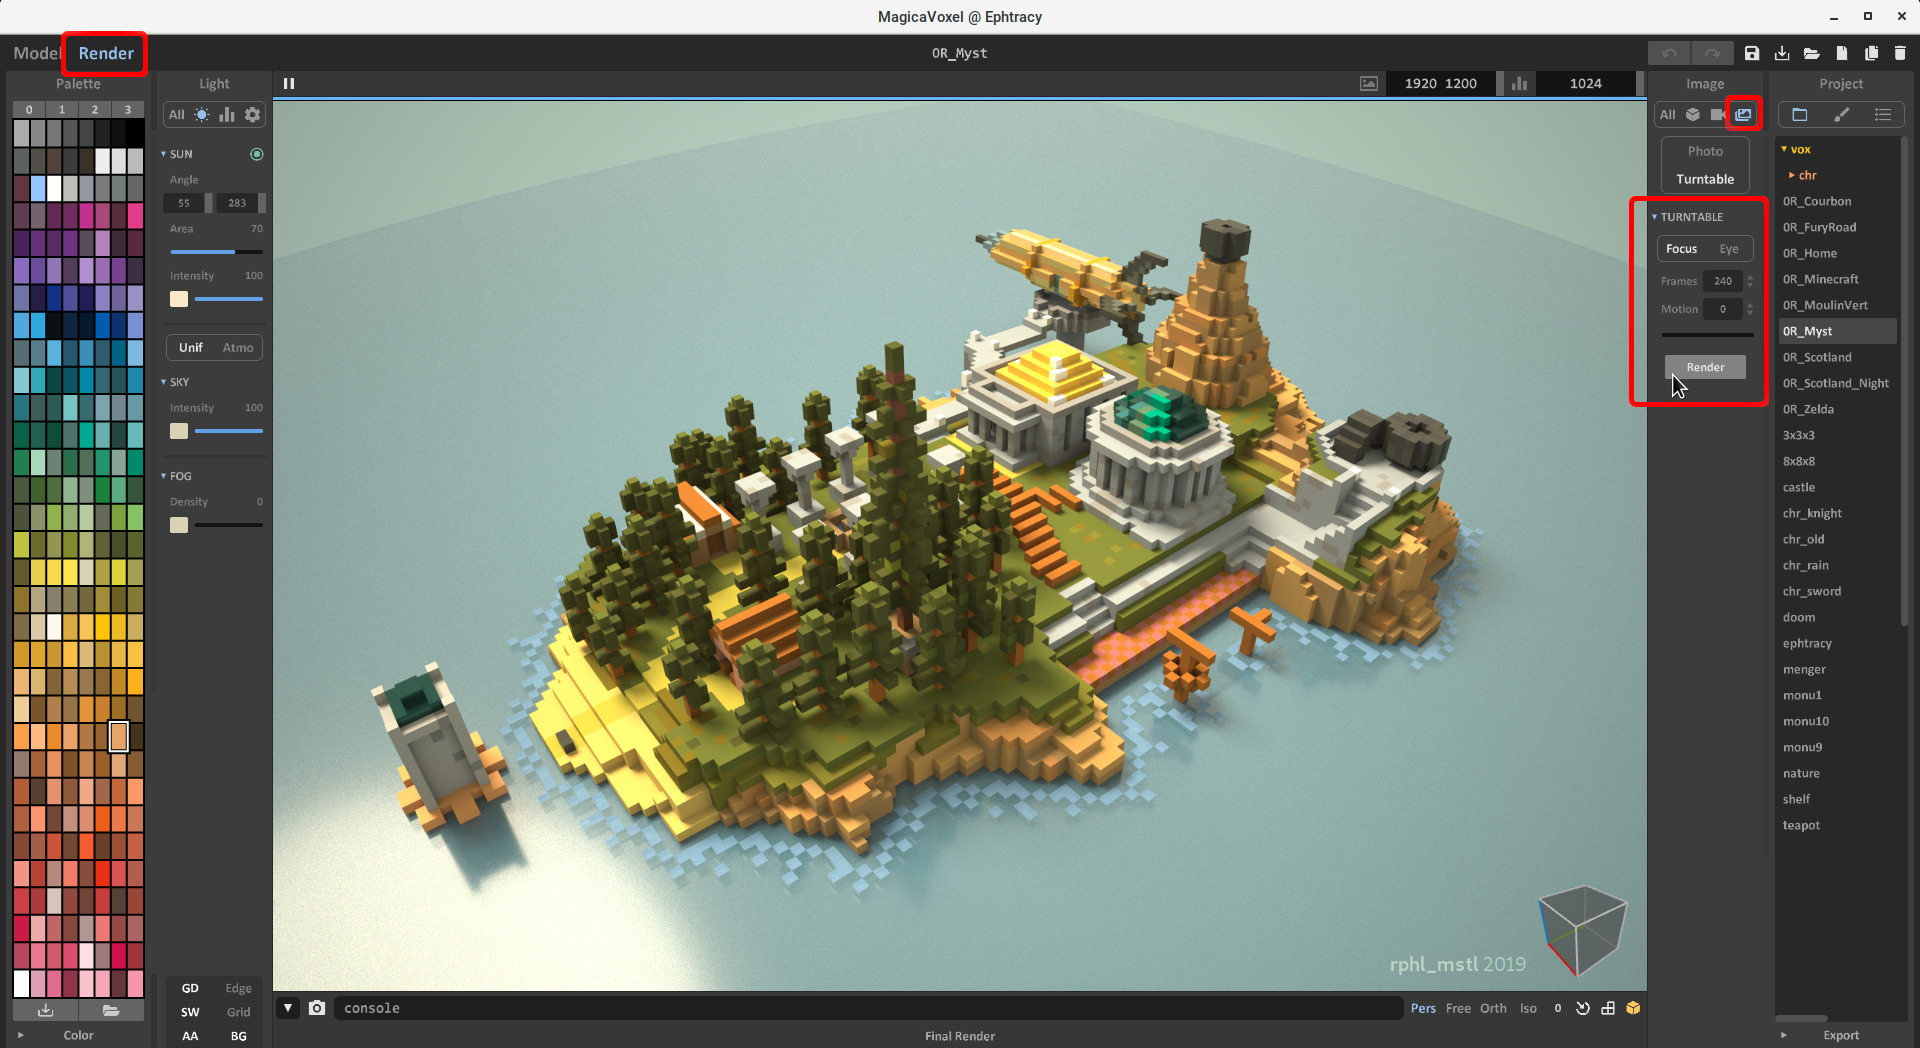 MagicaVoxel 3D Voxel Software